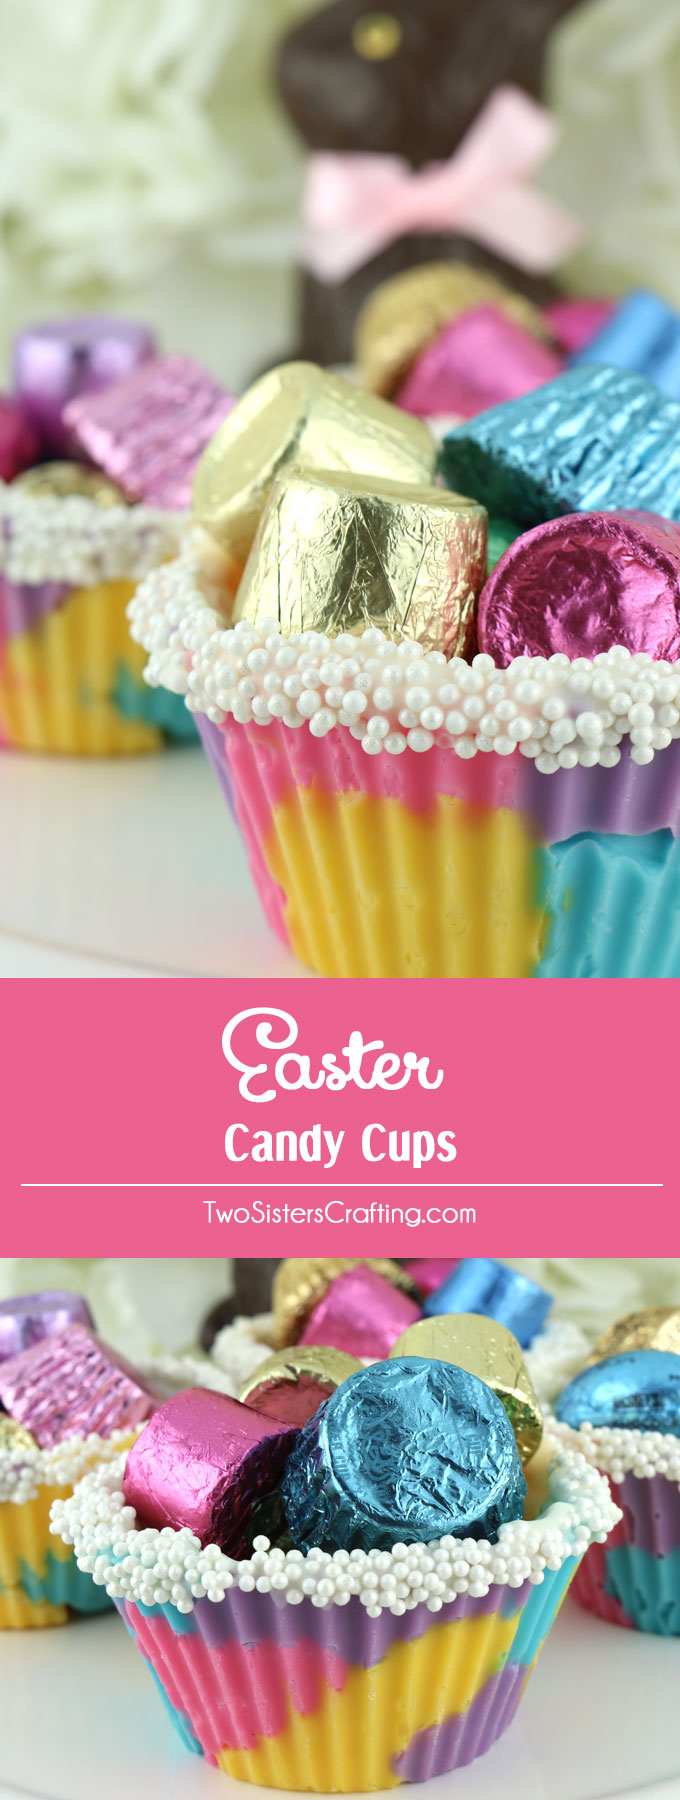 Easter Candy Cups - We took colorful candy melts and turned them into a homemade edible candy cup that can be filled with anything the Easter Bunny might have in his basket .. candy, jelly beans, small toys or even a yummy pudding or mousse! What a fun Easter Treat or a base of a yummy Easter Dessert. Pin this easy to make Easter Craft for later and follow us for more great Easter Food Ideas.